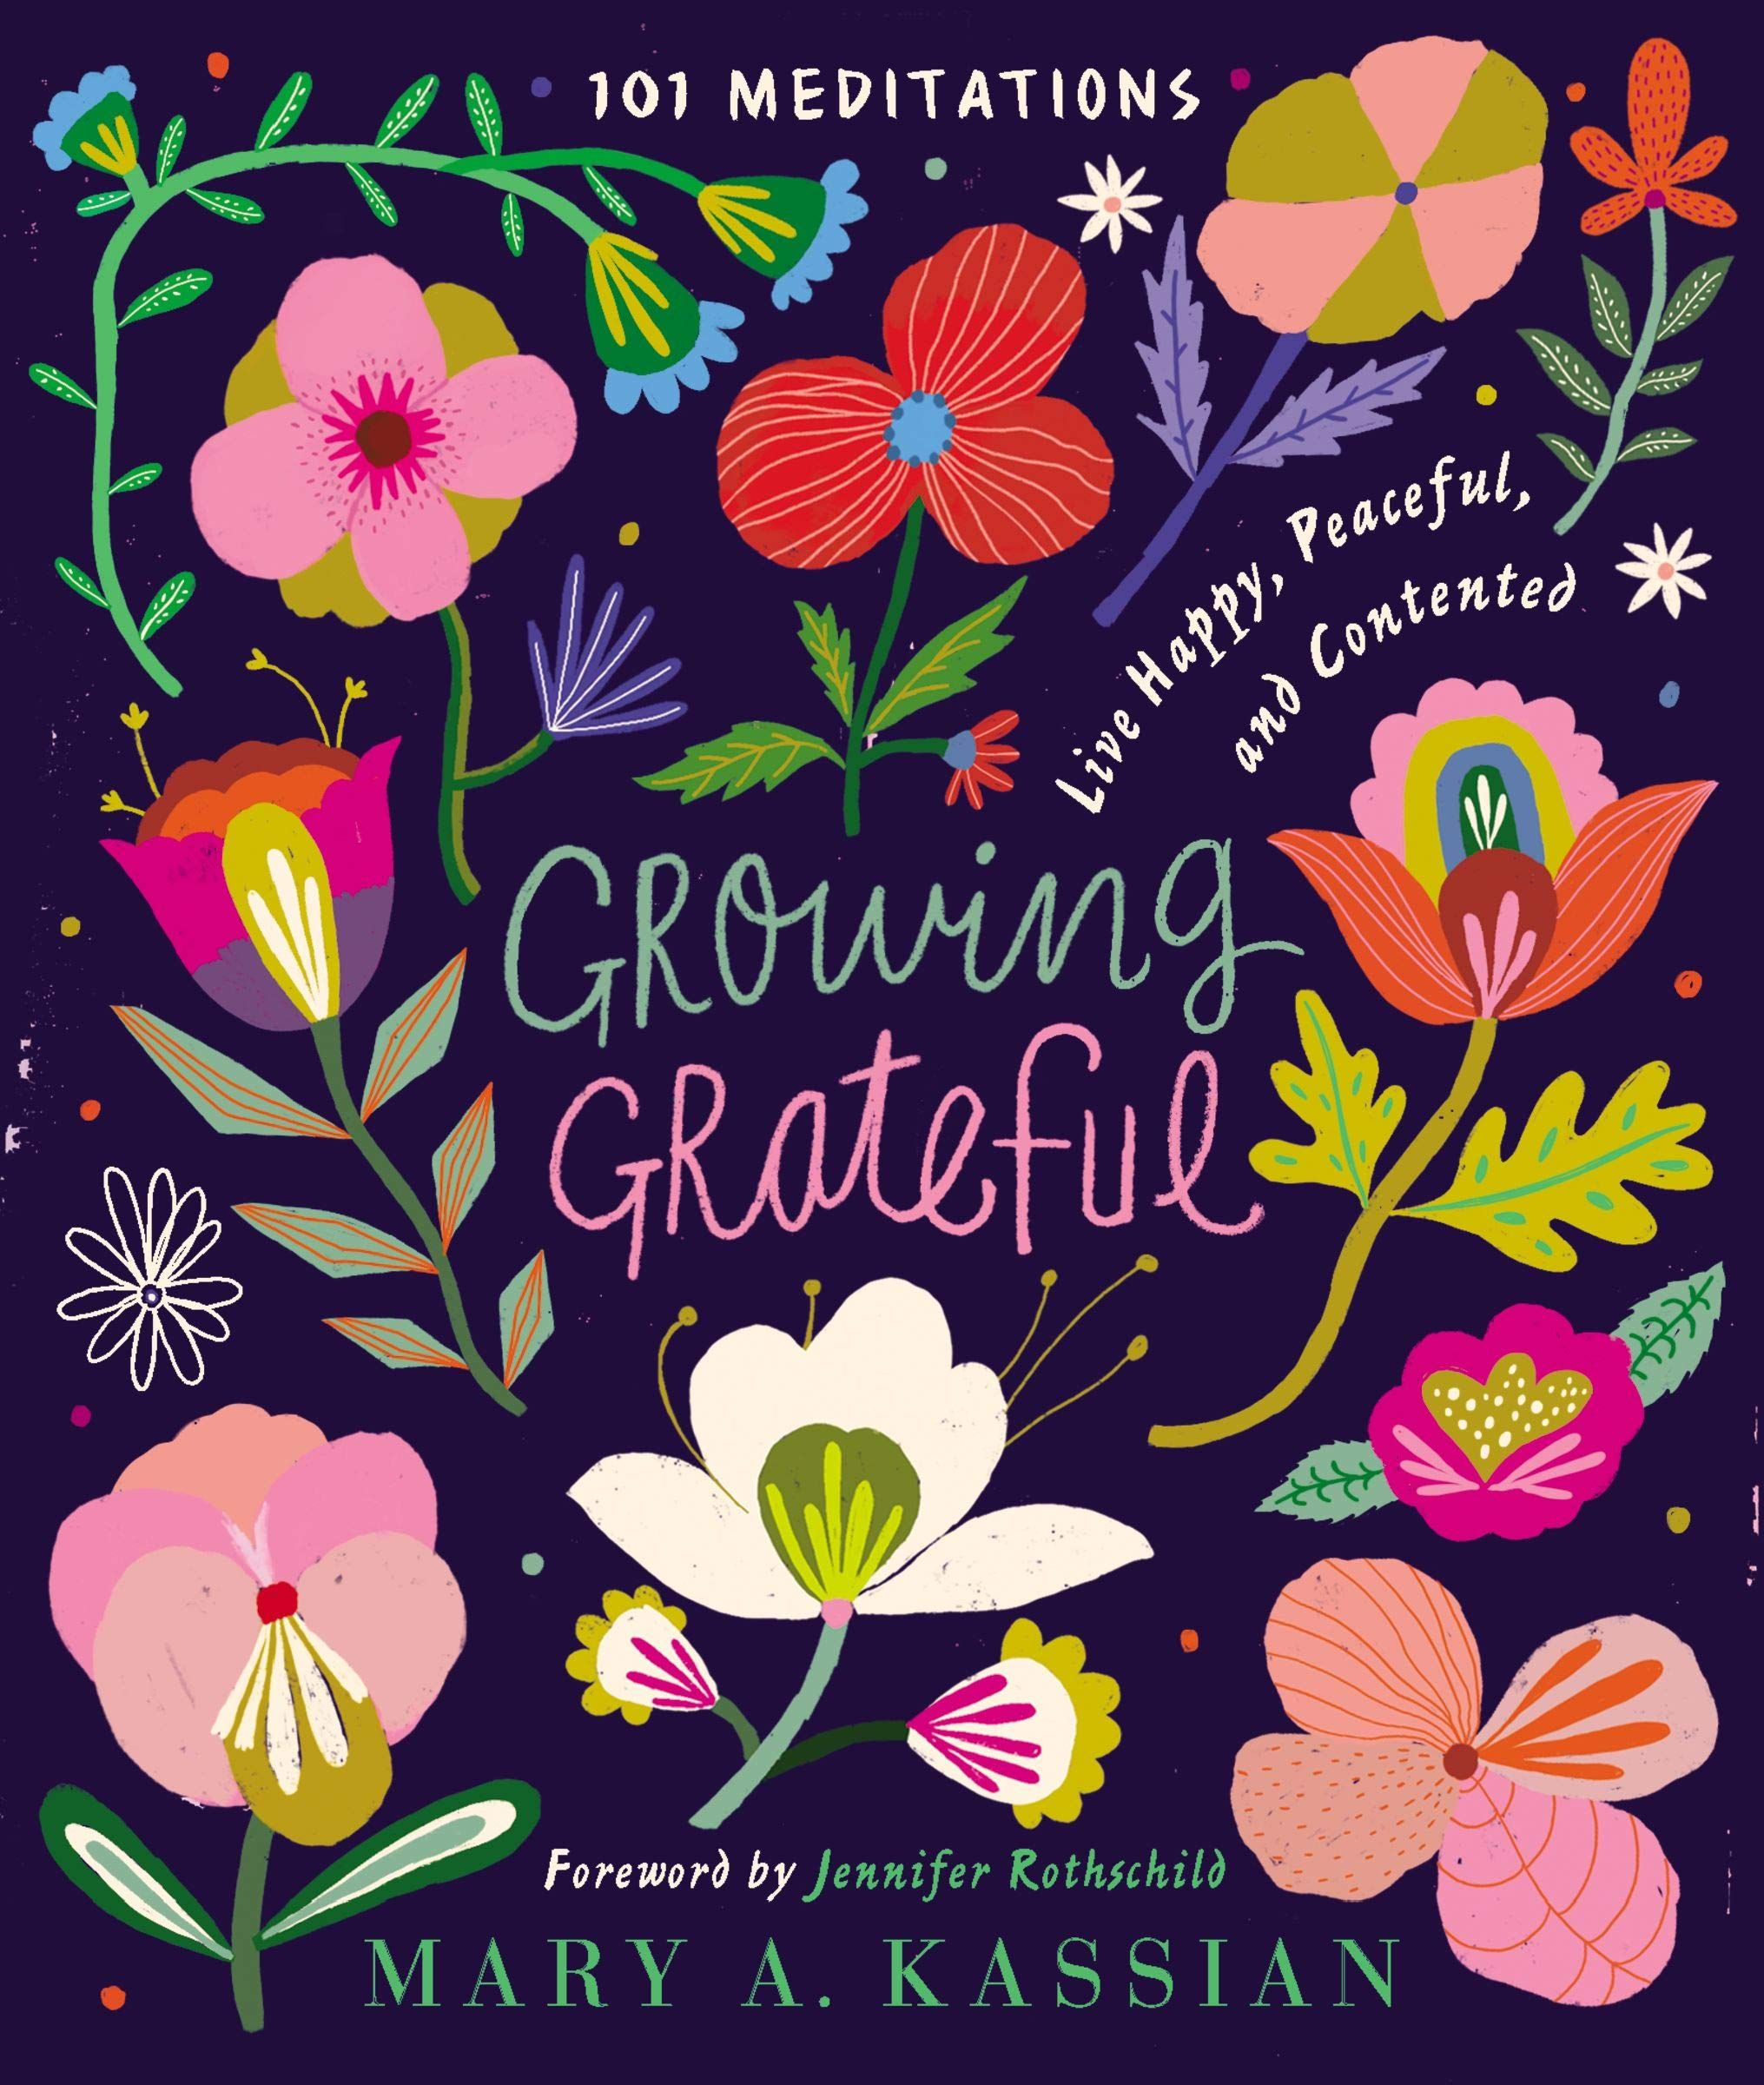 Come Cultivate A Garden Of Gratitude With 101 Entries On